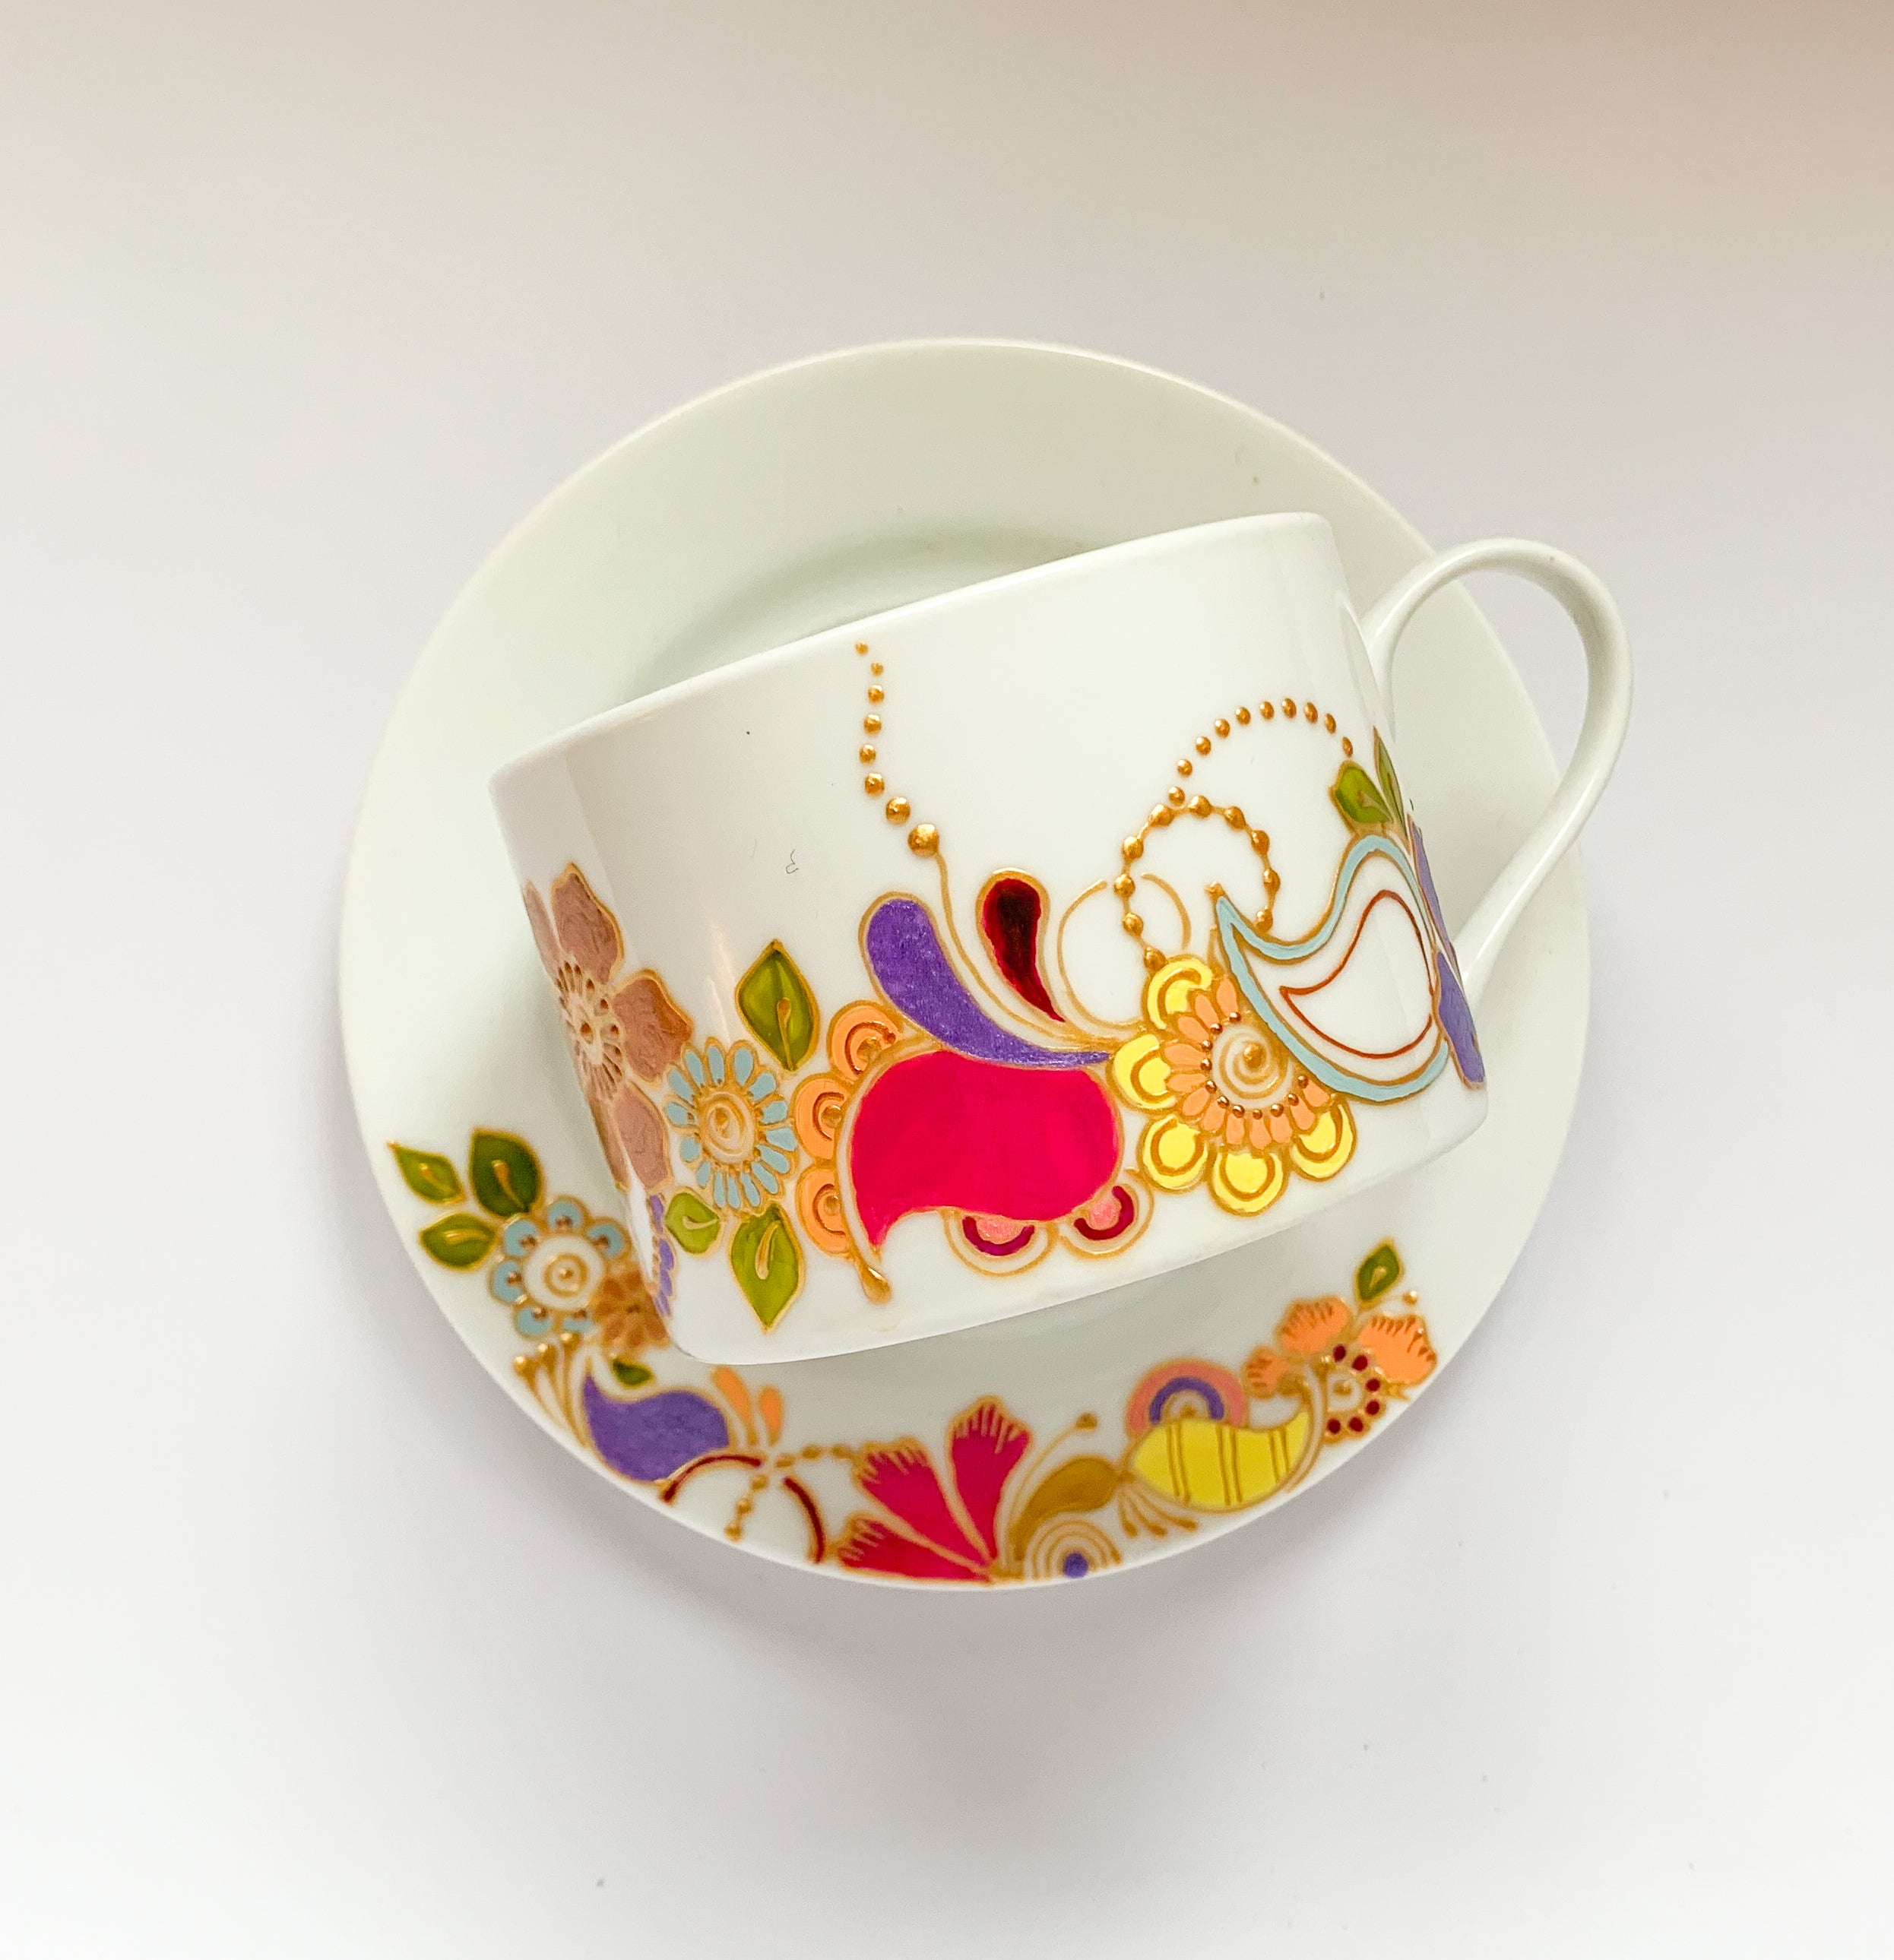 PASTEL RAINBOW Floral Teacup set, Henna-inspired and Hand-painted Teacup and Saucer, Full color henna motif 10oz